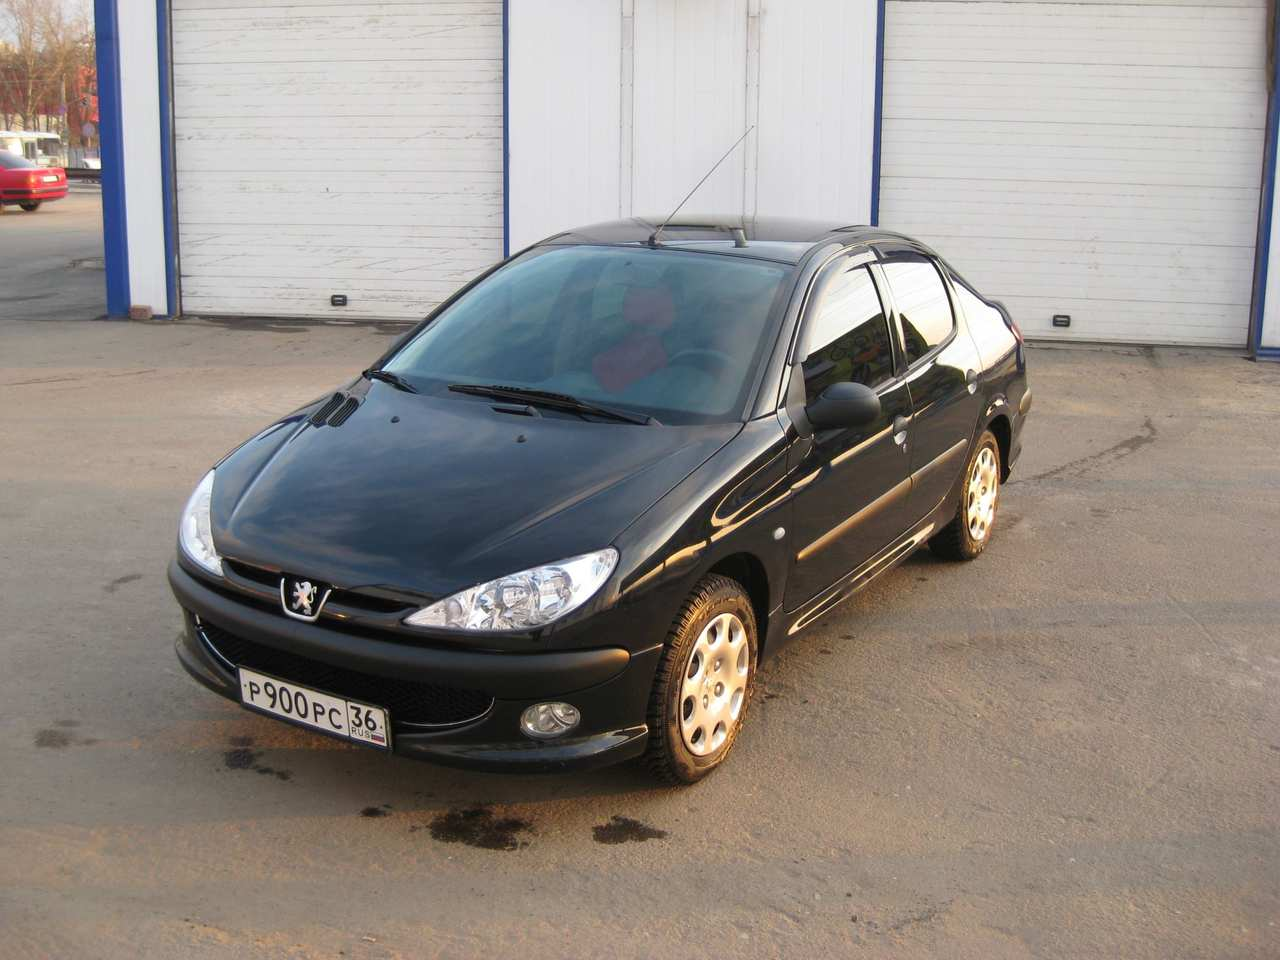 2008 peugeot 206 sedan pictures gasoline ff manual for sale. Black Bedroom Furniture Sets. Home Design Ideas